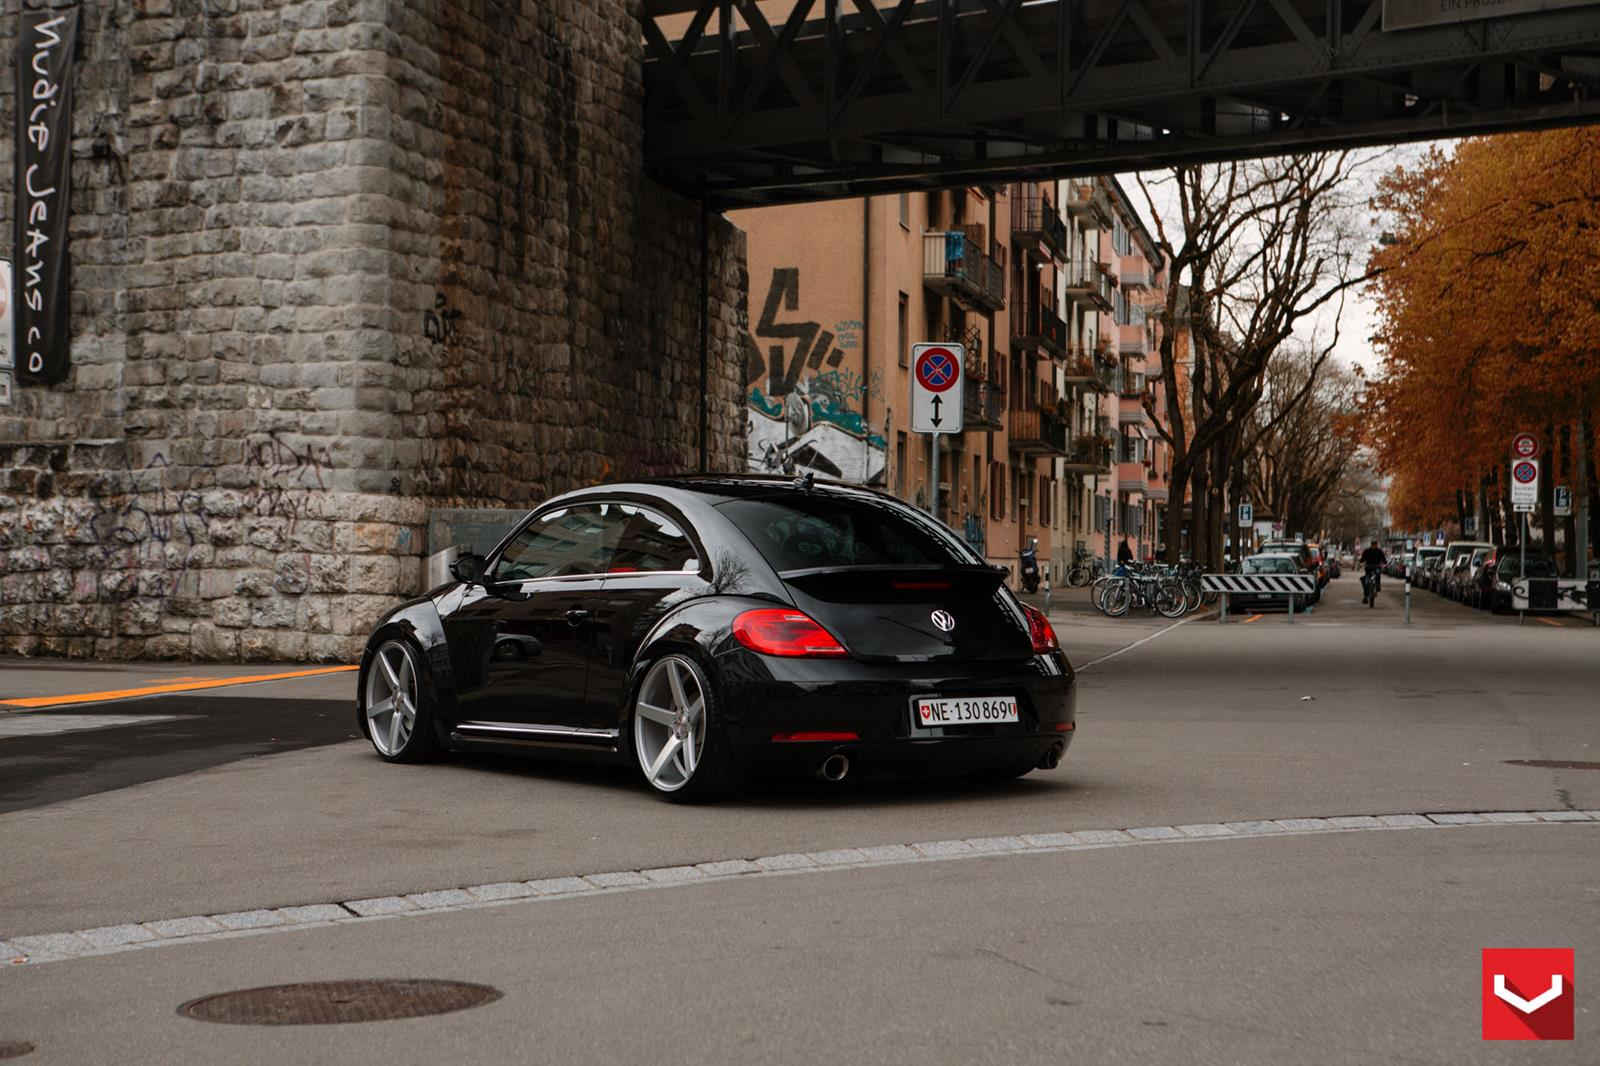 VW new Beetle tuning pictures